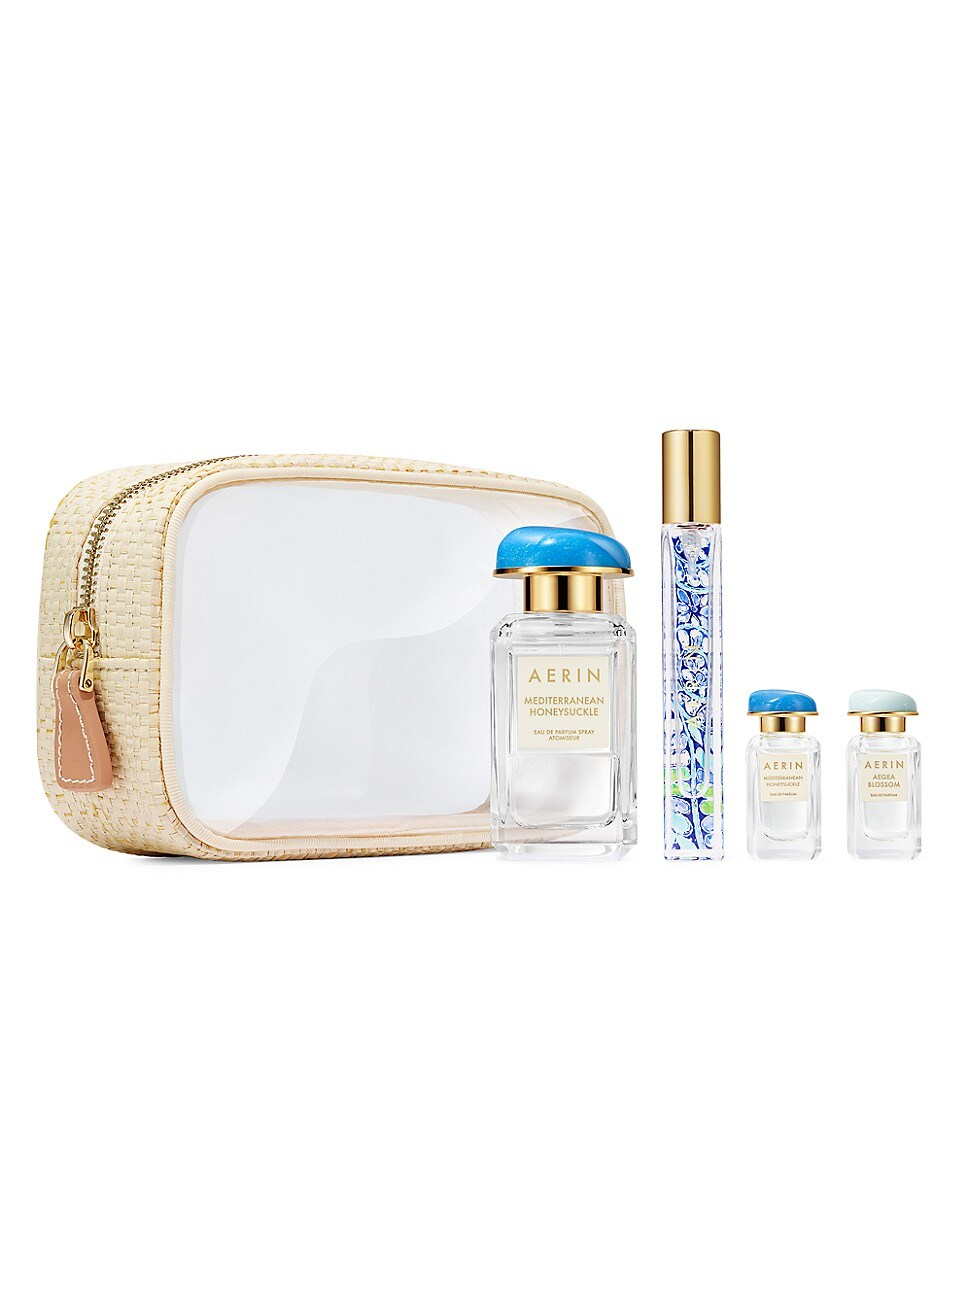 Aerin Beauty sets MEDITERRANEAN HONEYSUCKLE 5-PIECE TRAVEL SET